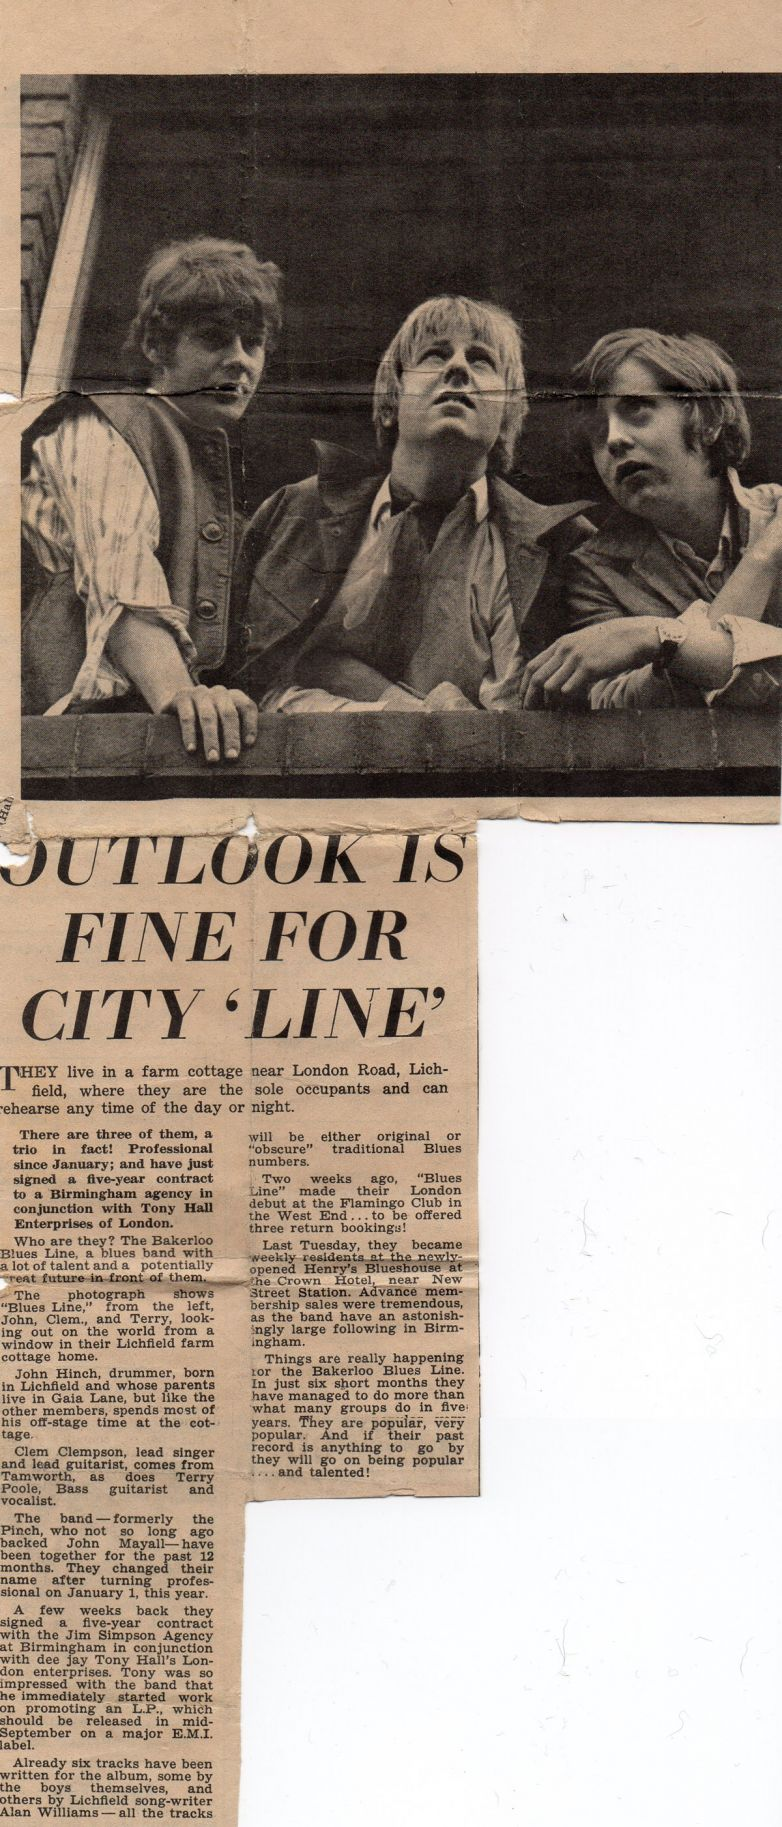 Outlook is Fine for City 'Line""